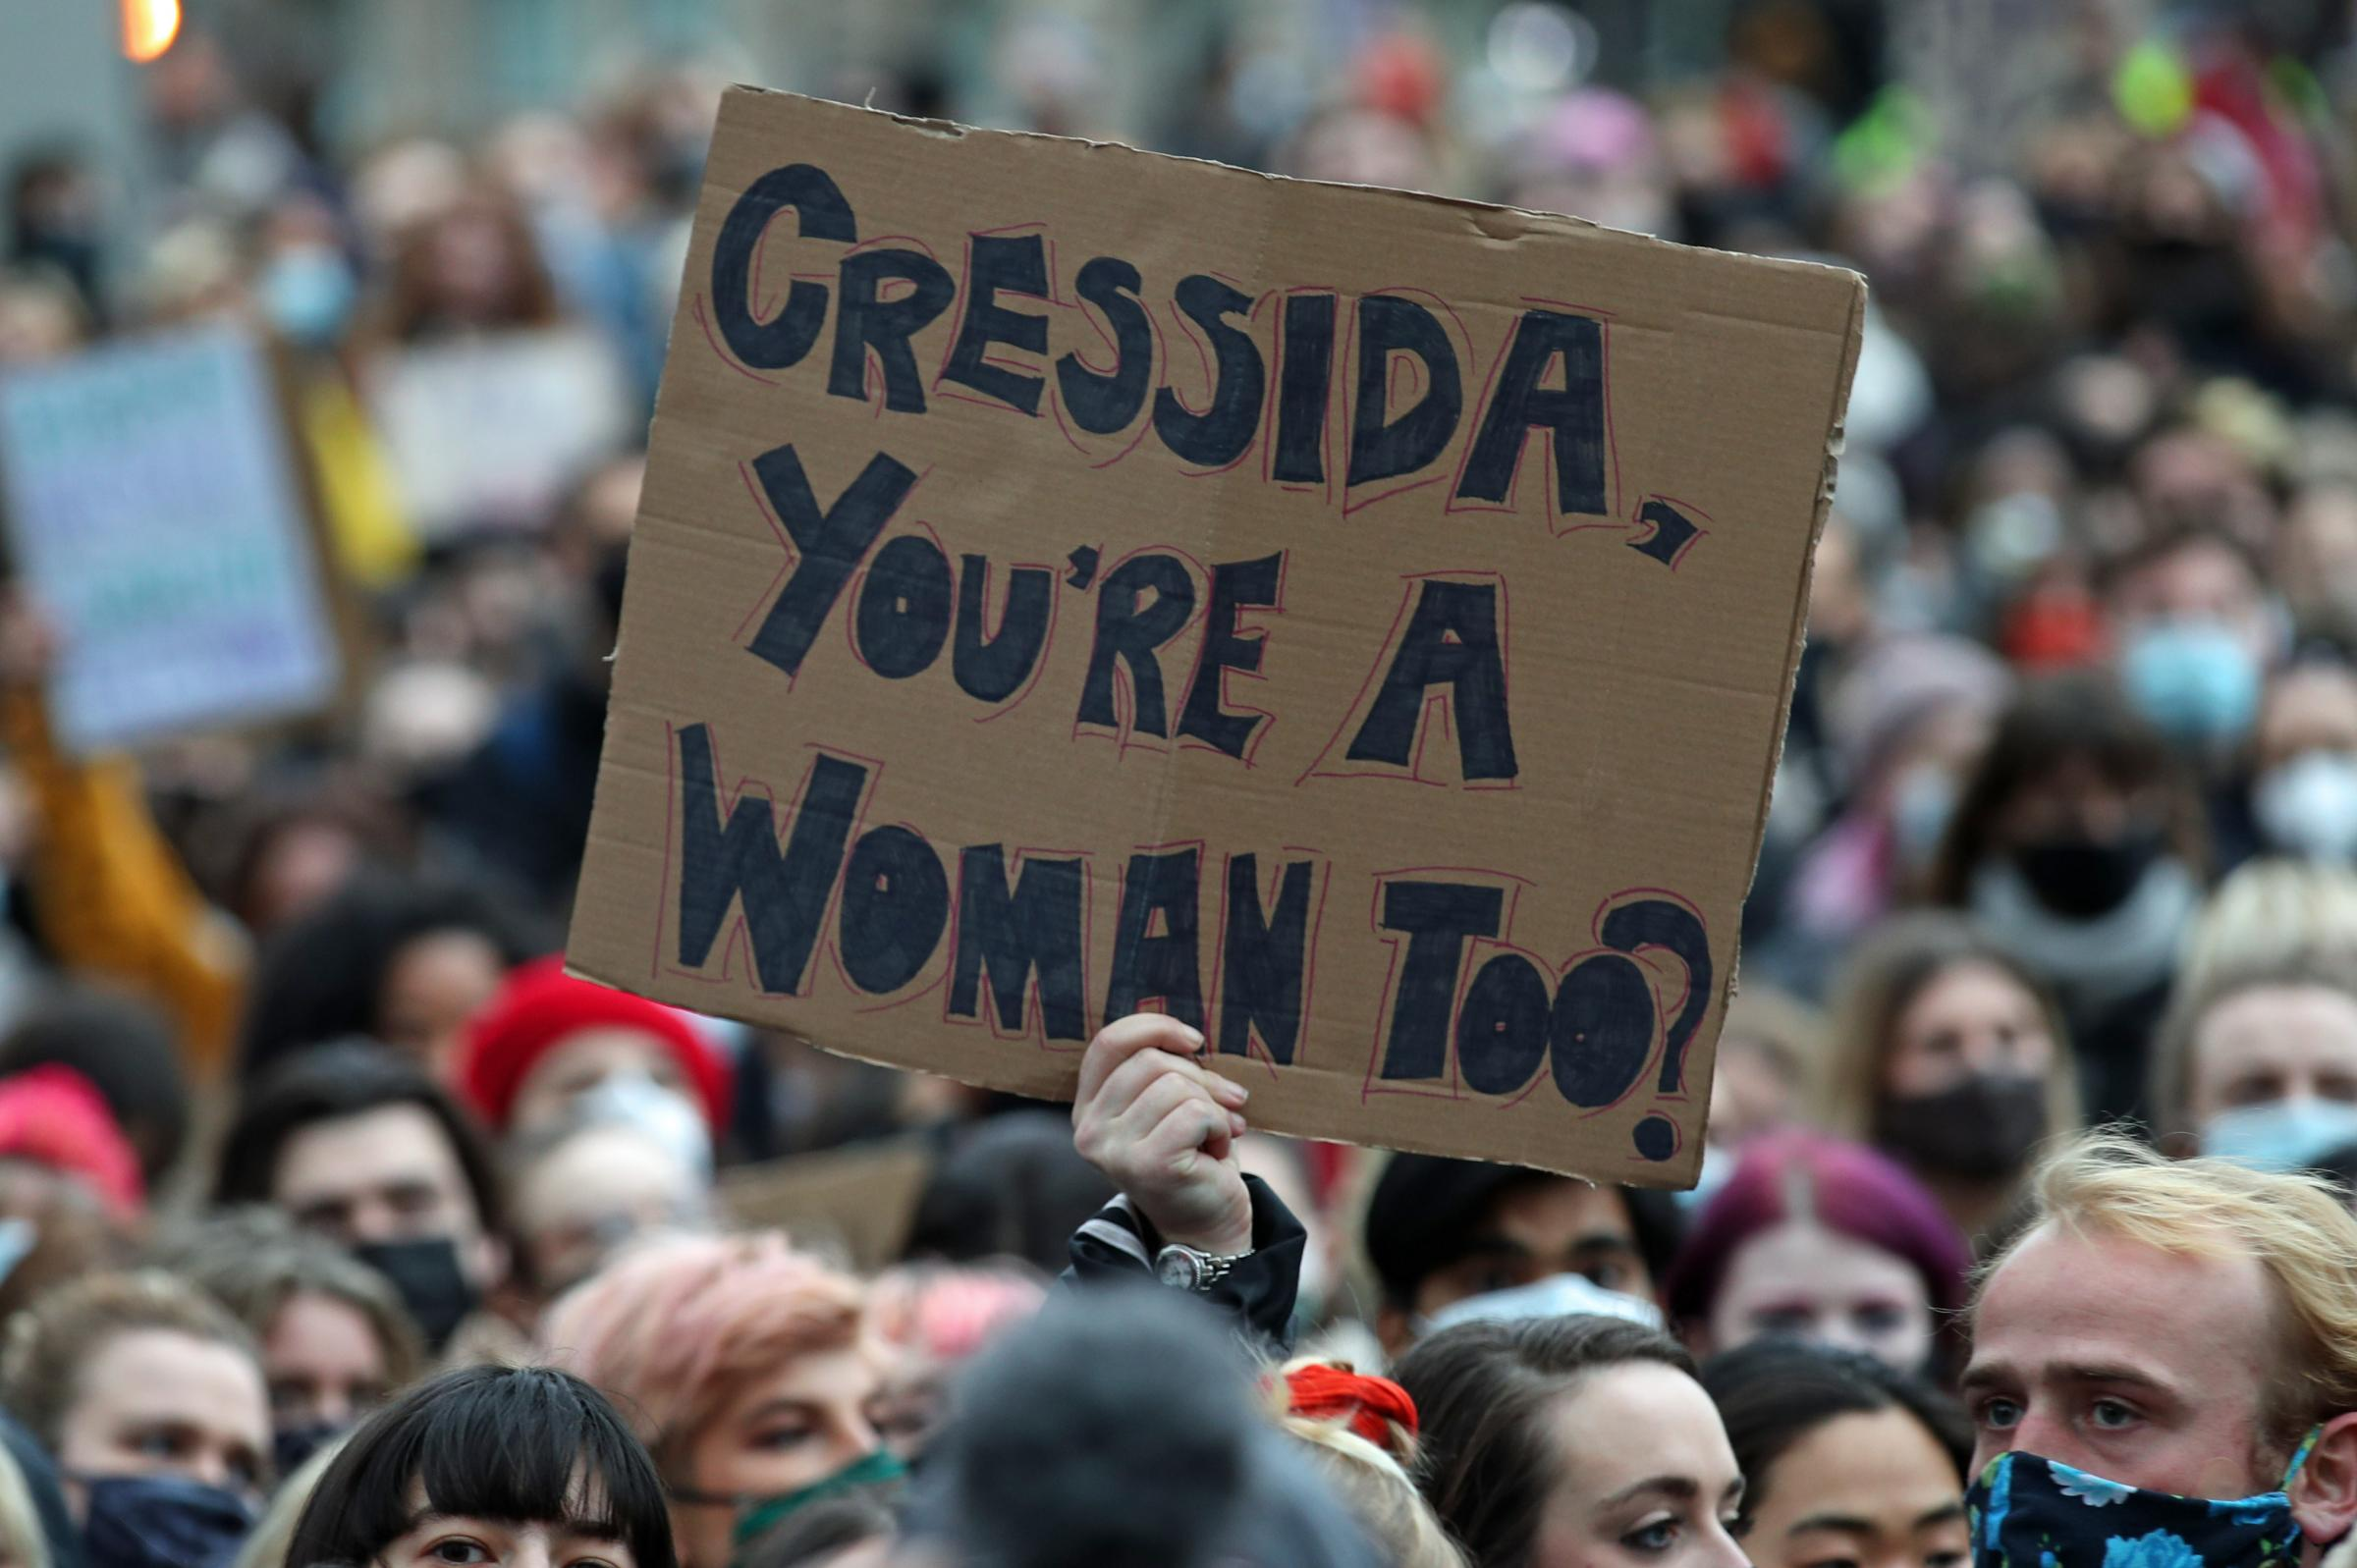 A person holds up a placard addressing Metropolitan Police Commissioner Dame Cressida Dick amongst a crowd of people holding placards in Parliament Square